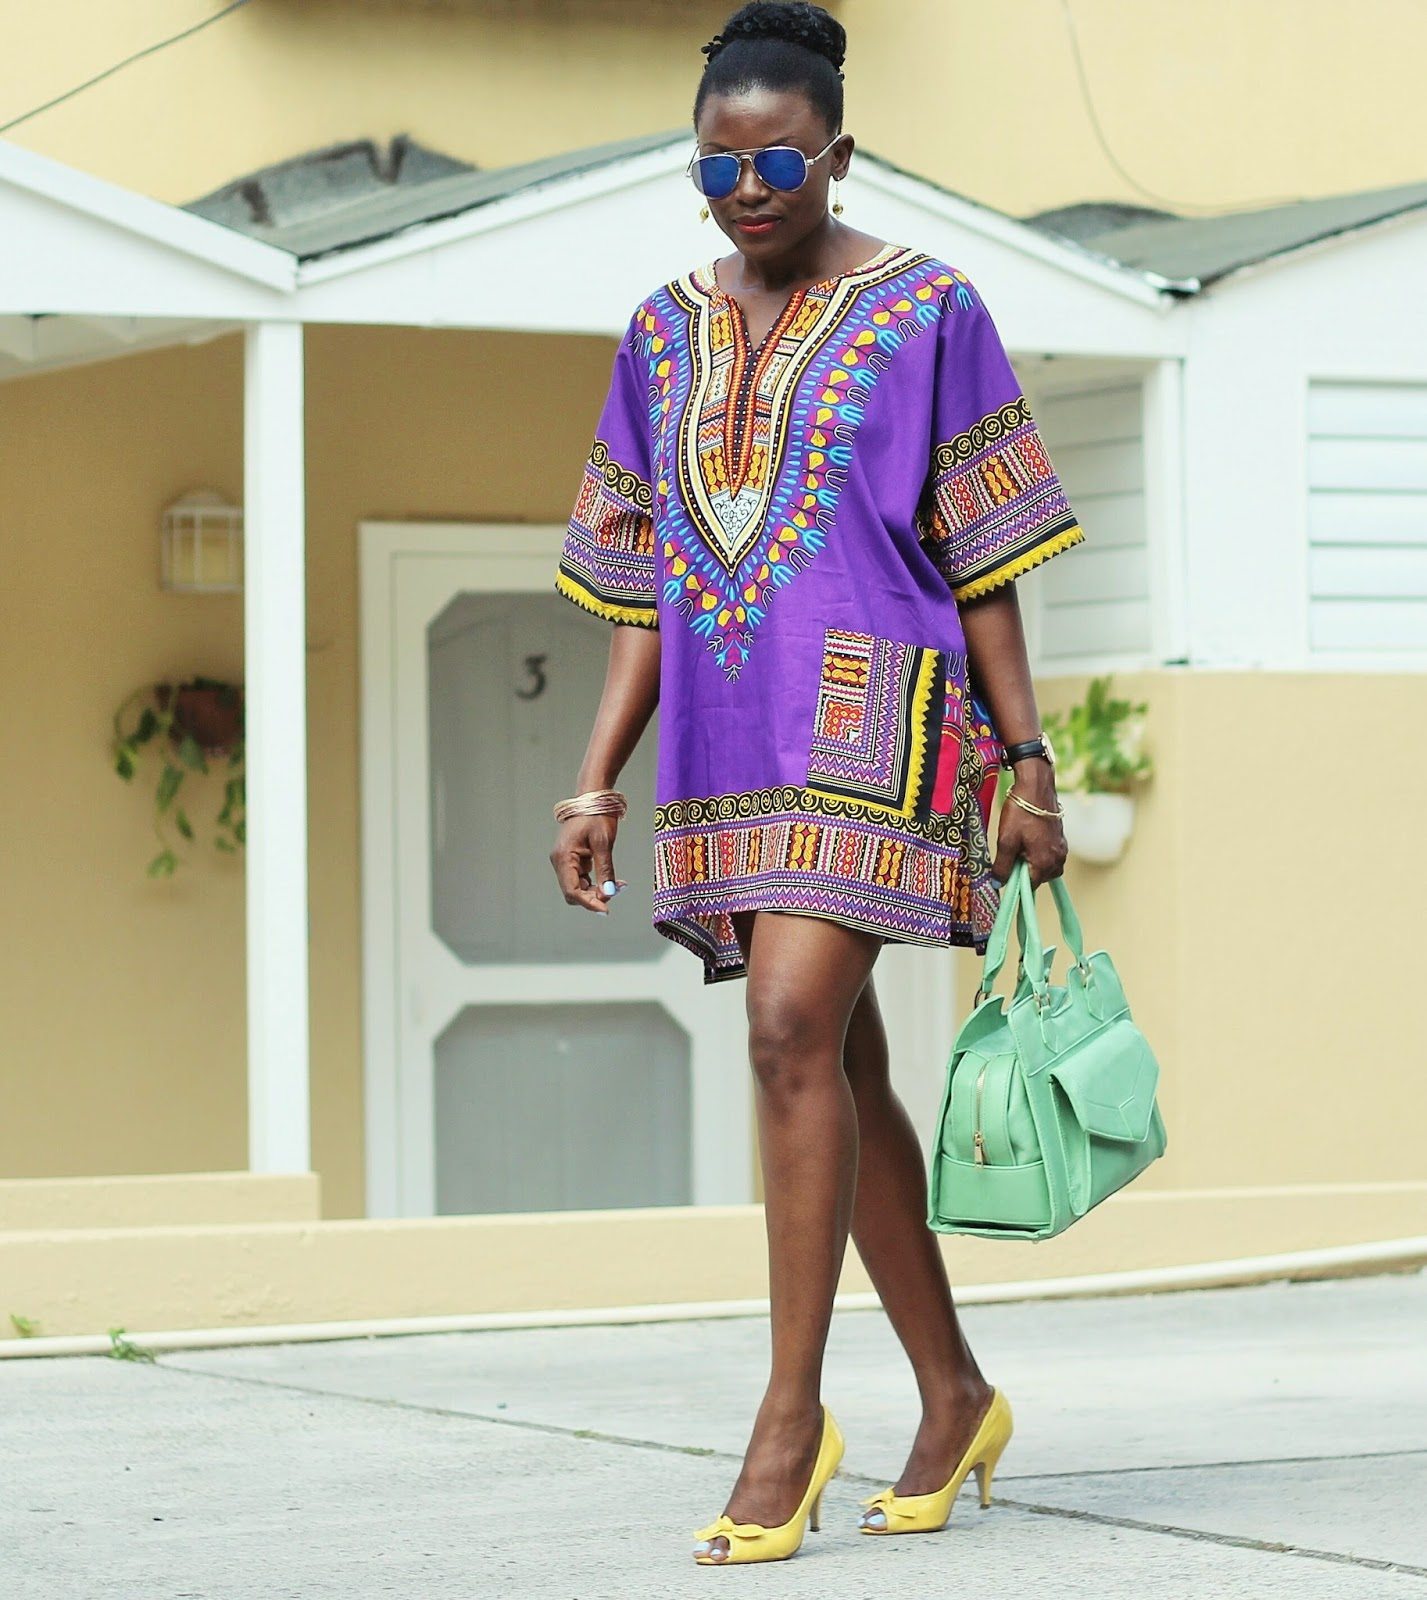 THE DASHIKI SHIRT